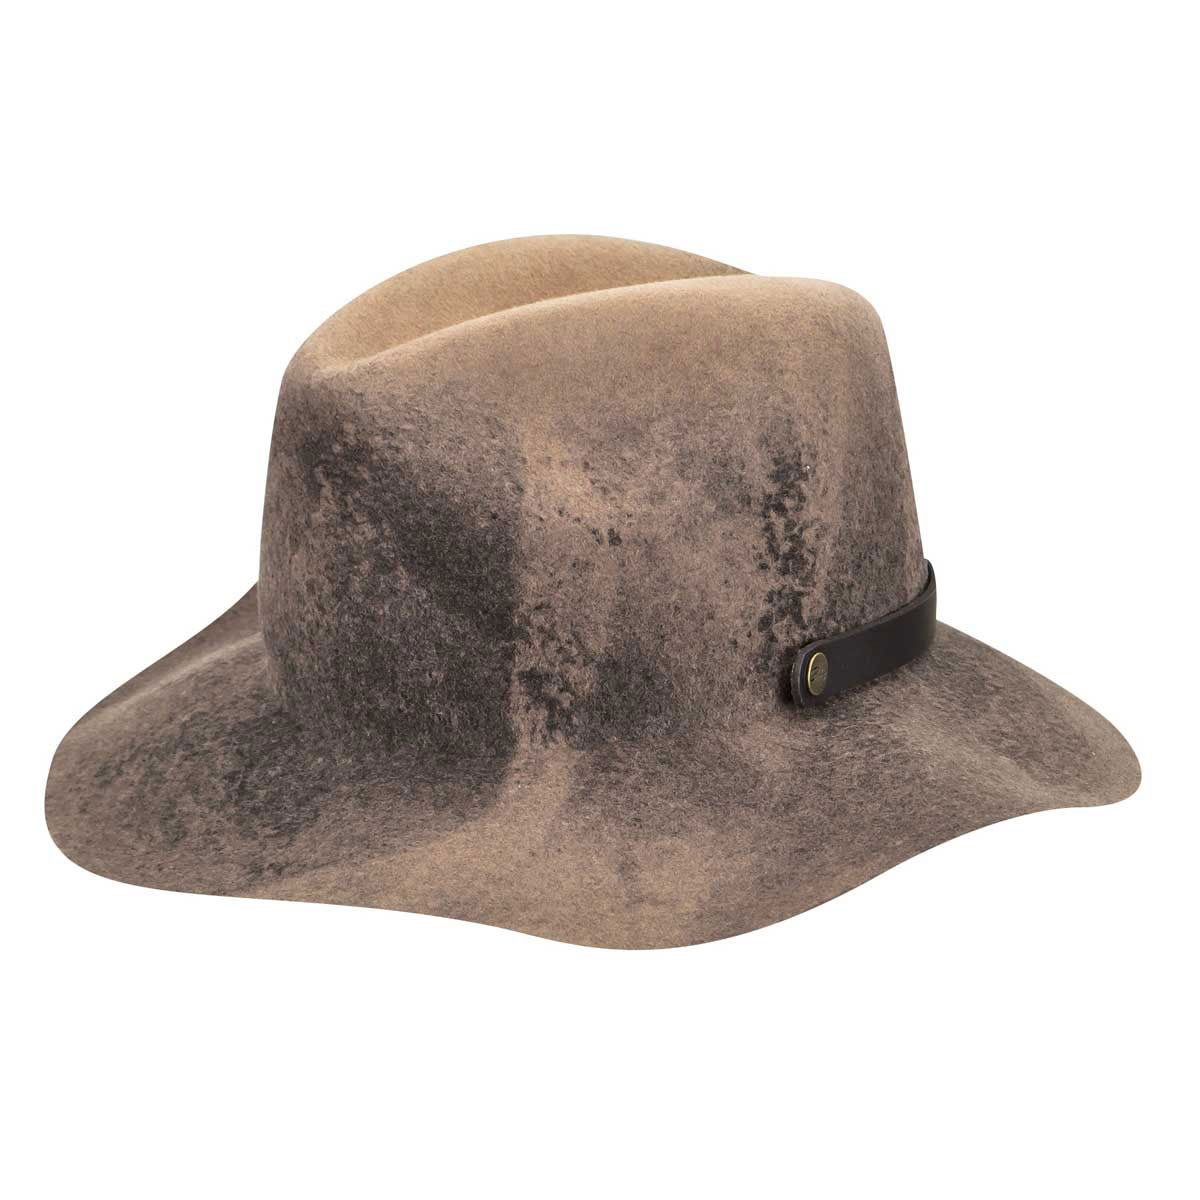 Bailey of Hollywood Ashmore Fedora in Taupe Swirl